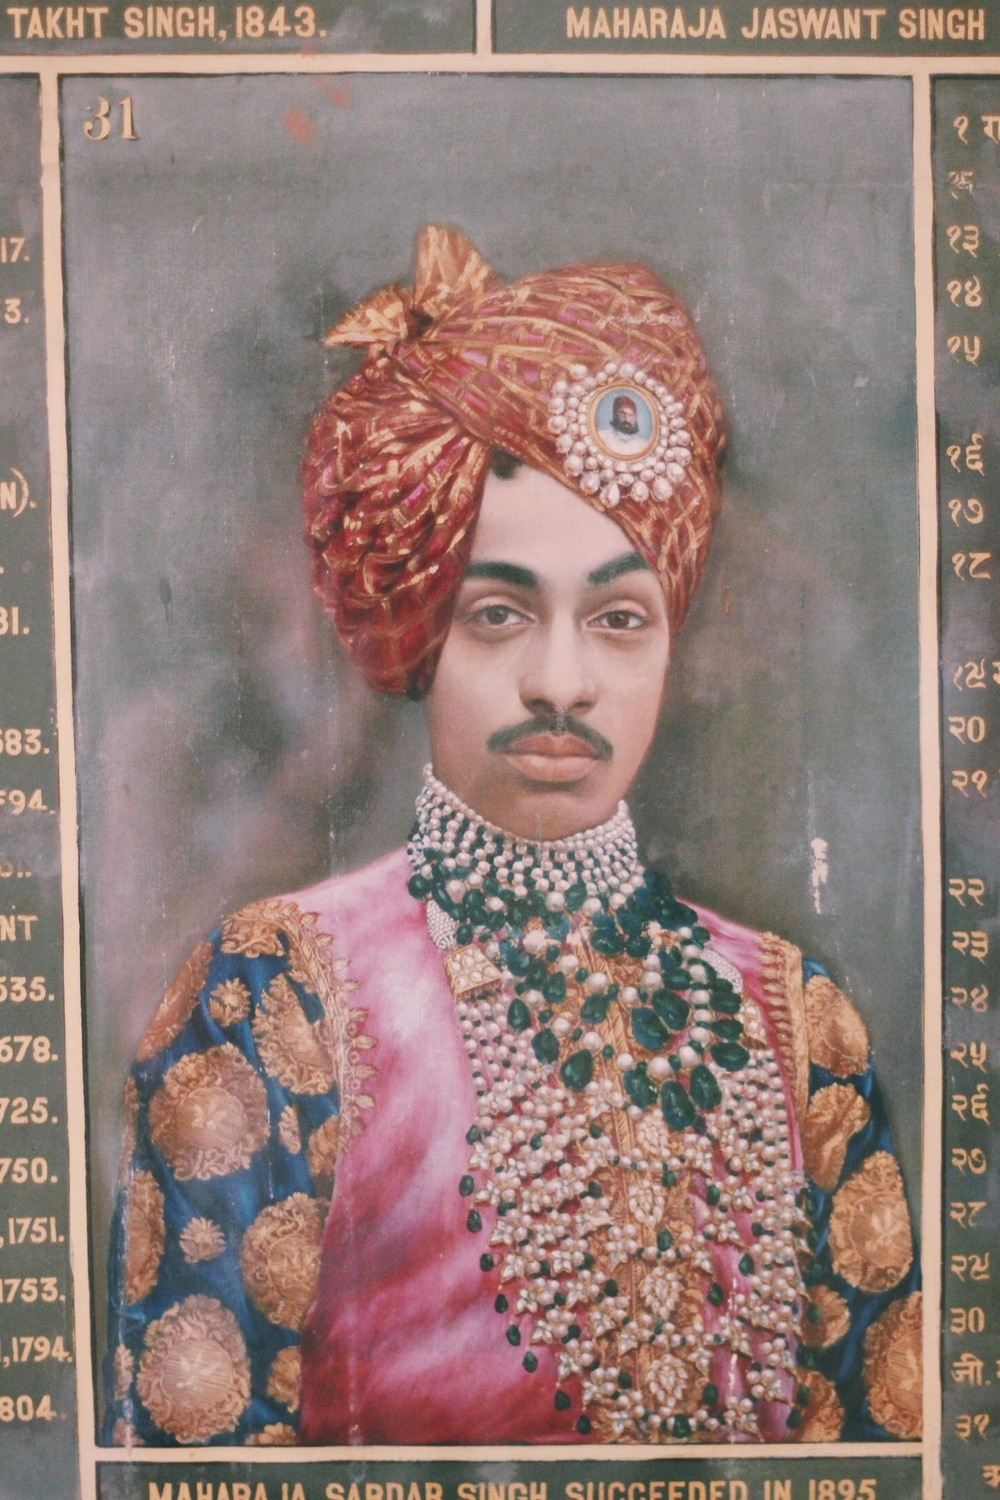 Portrait at the Mehrangarh Fort, Jodhpur